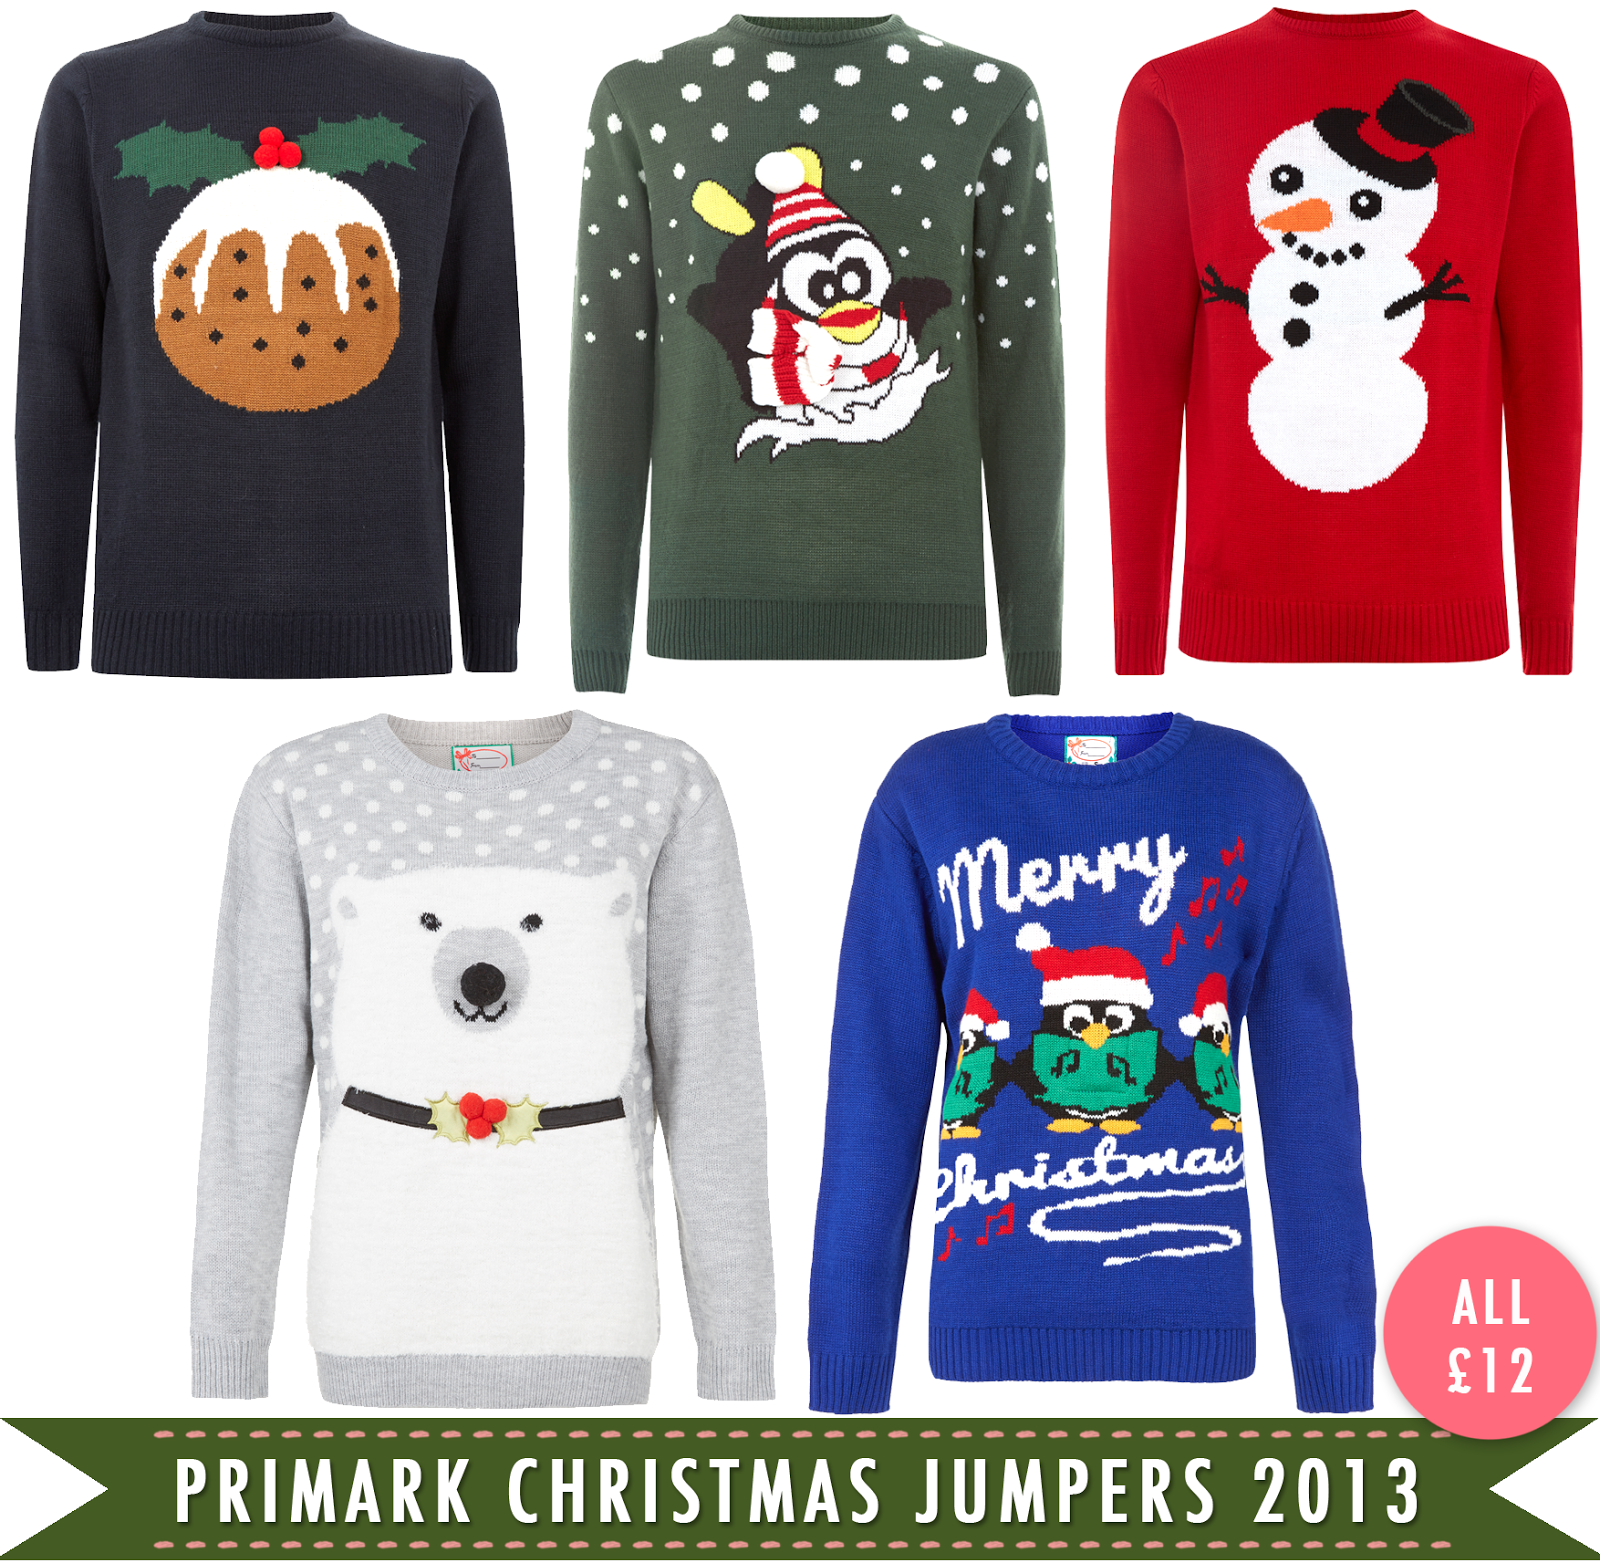 Novelty Christmas Jumpers from Primark